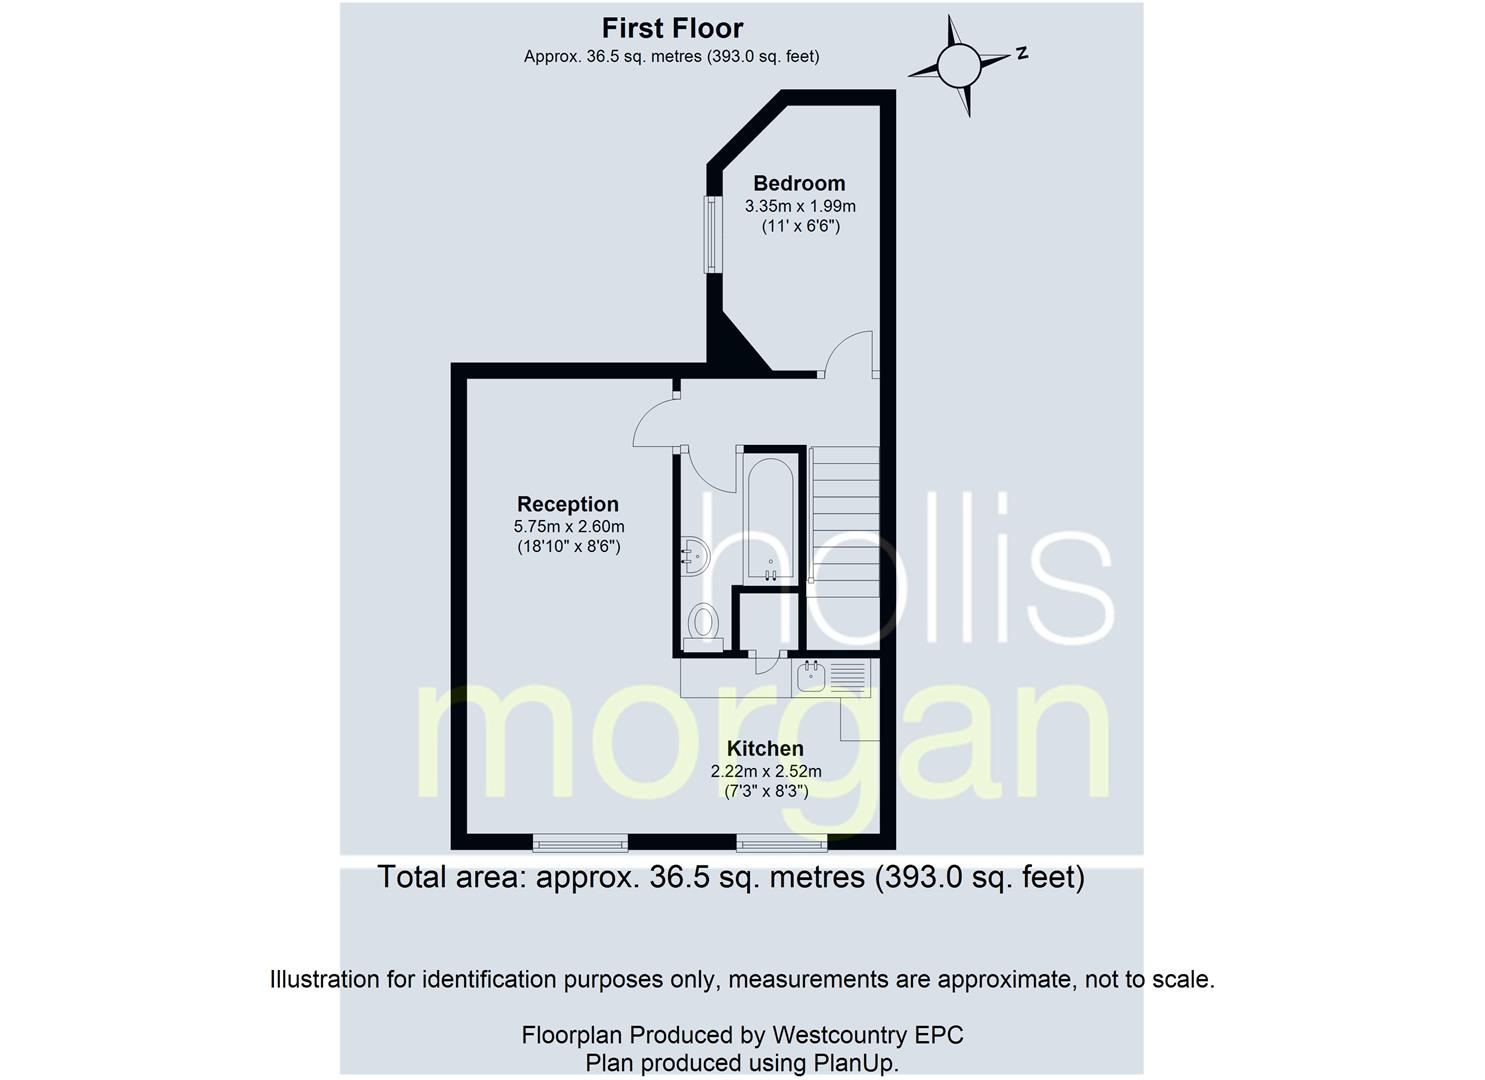 Floorplans For 1 BED FLAT - REQUIRES UPDATING